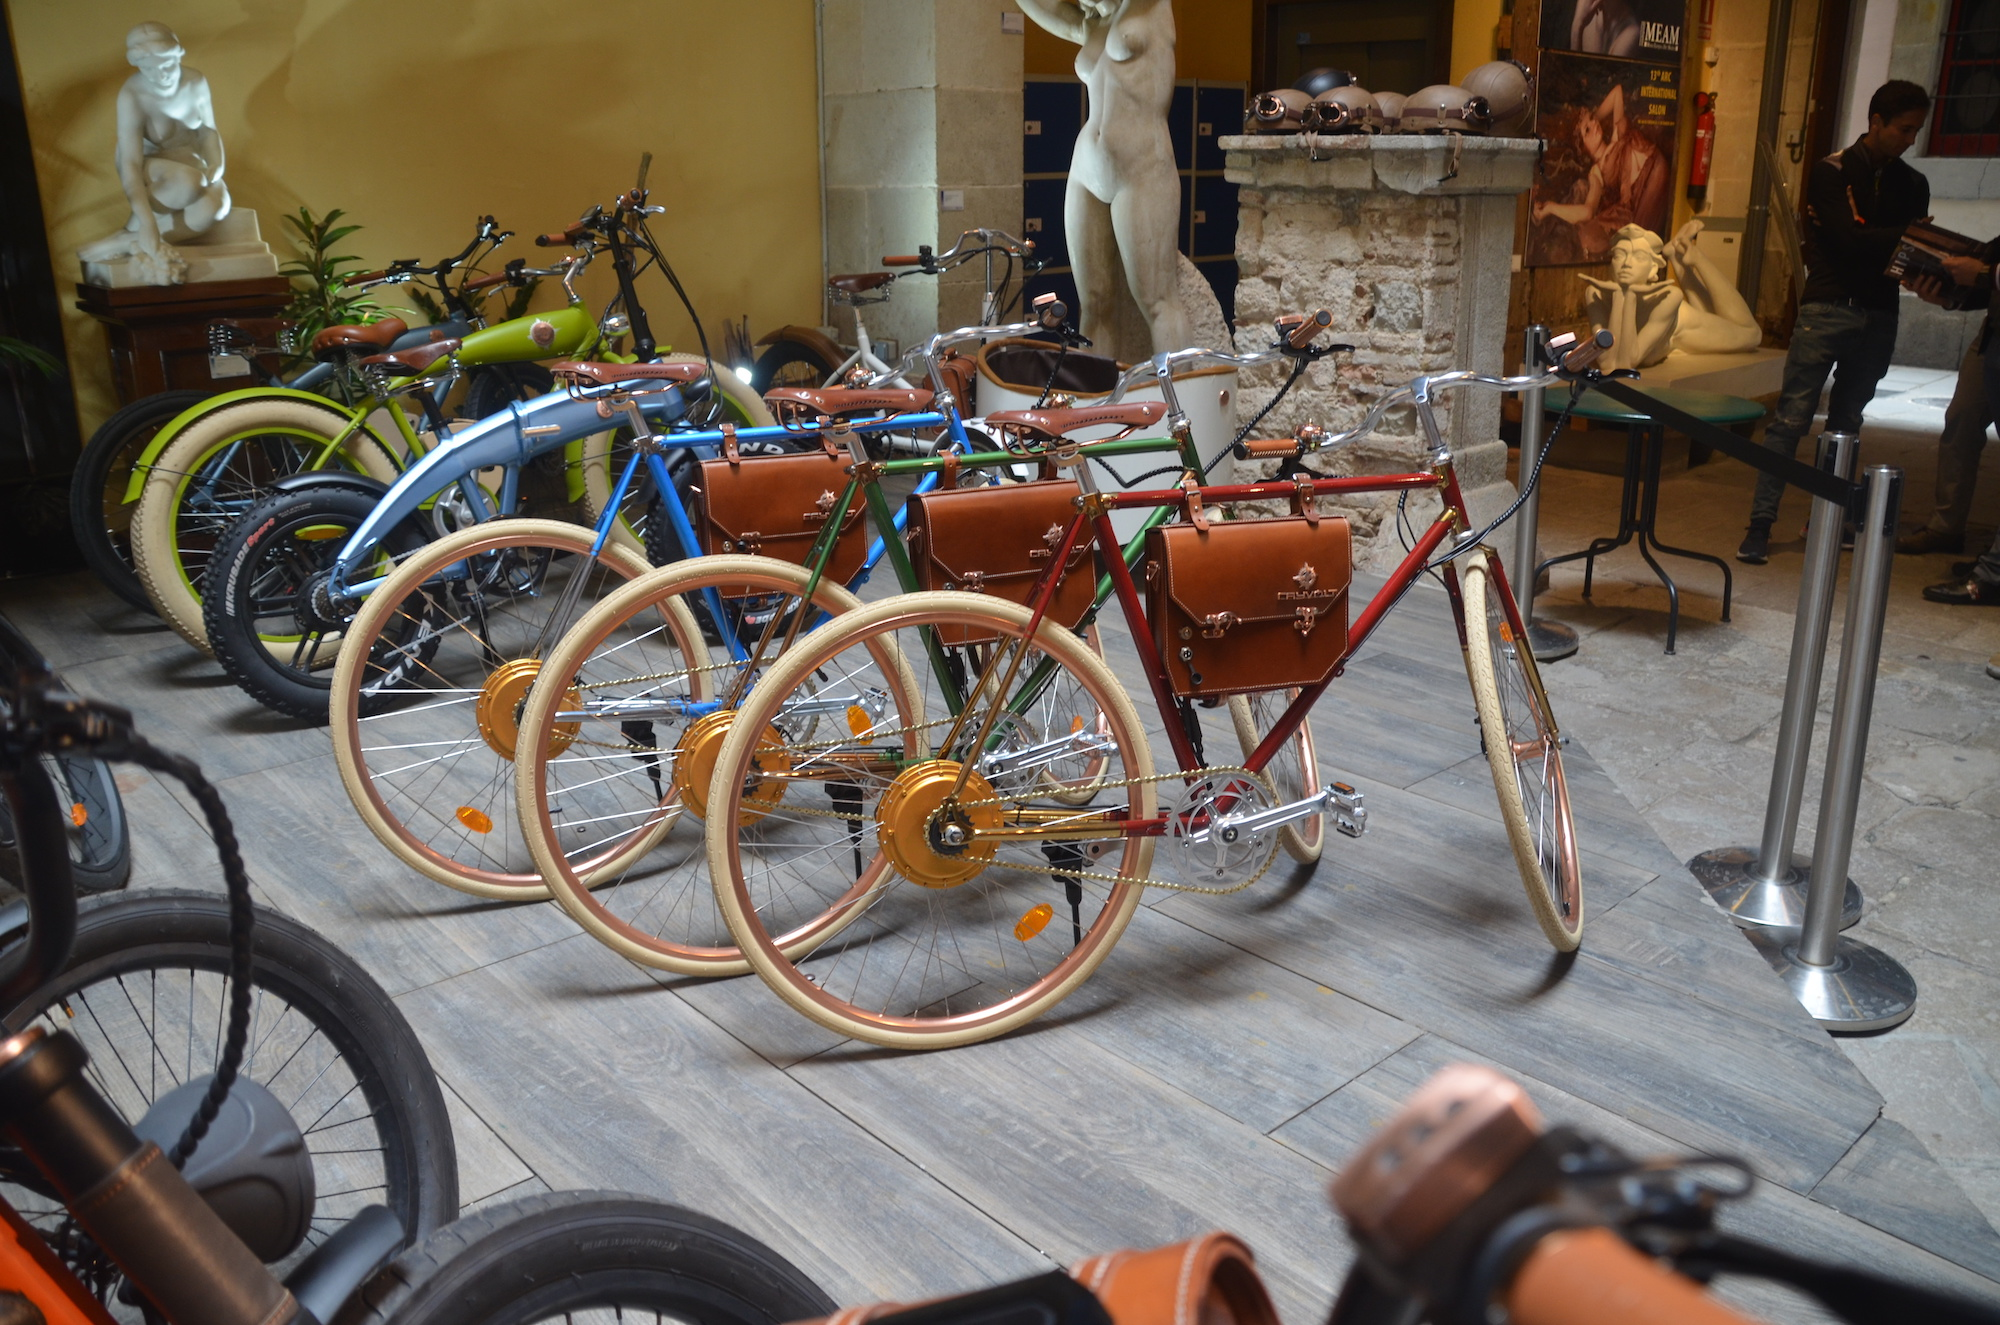 Rayvolt shows off beautiful line of steampunk electric bicycles, debuts e-motorcycle prototype